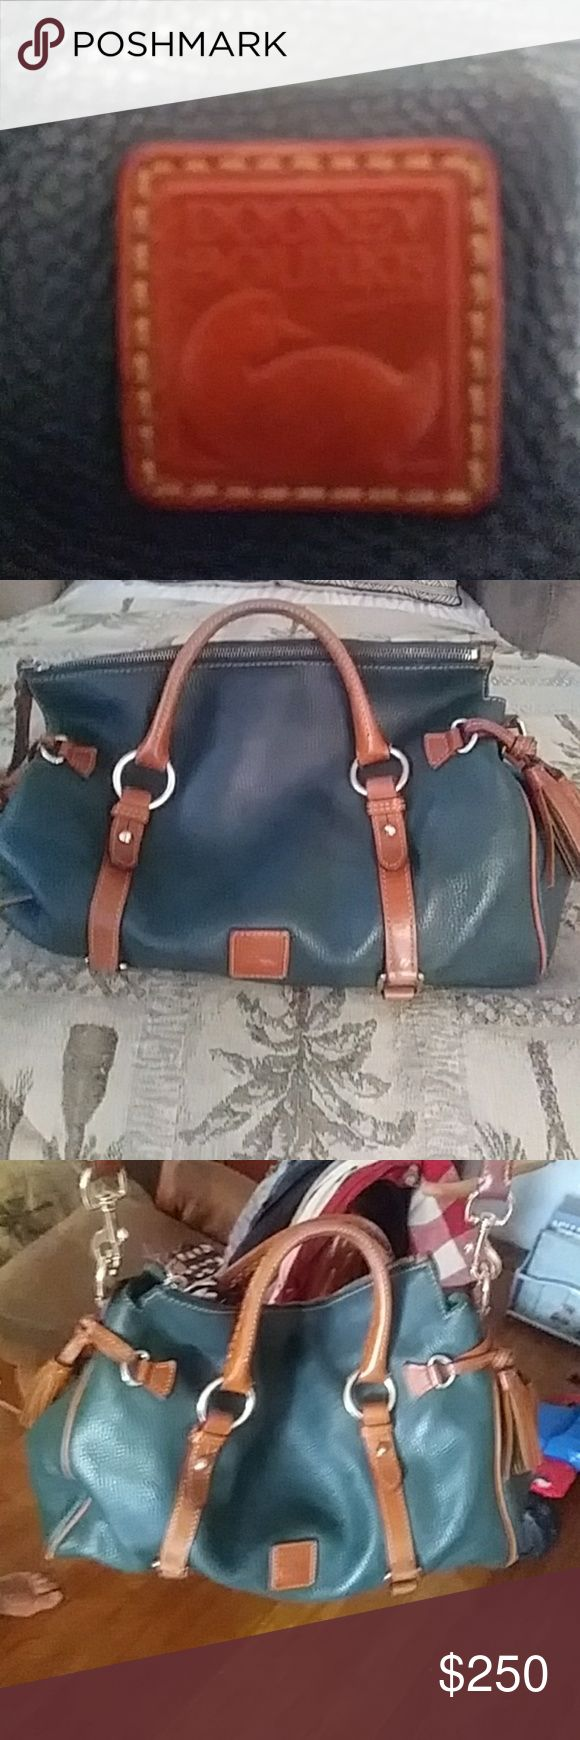 Dooney Bourke AUTHENTIC FLORENTINE Large (Emerald) handbag Dooney & Bourke Bags